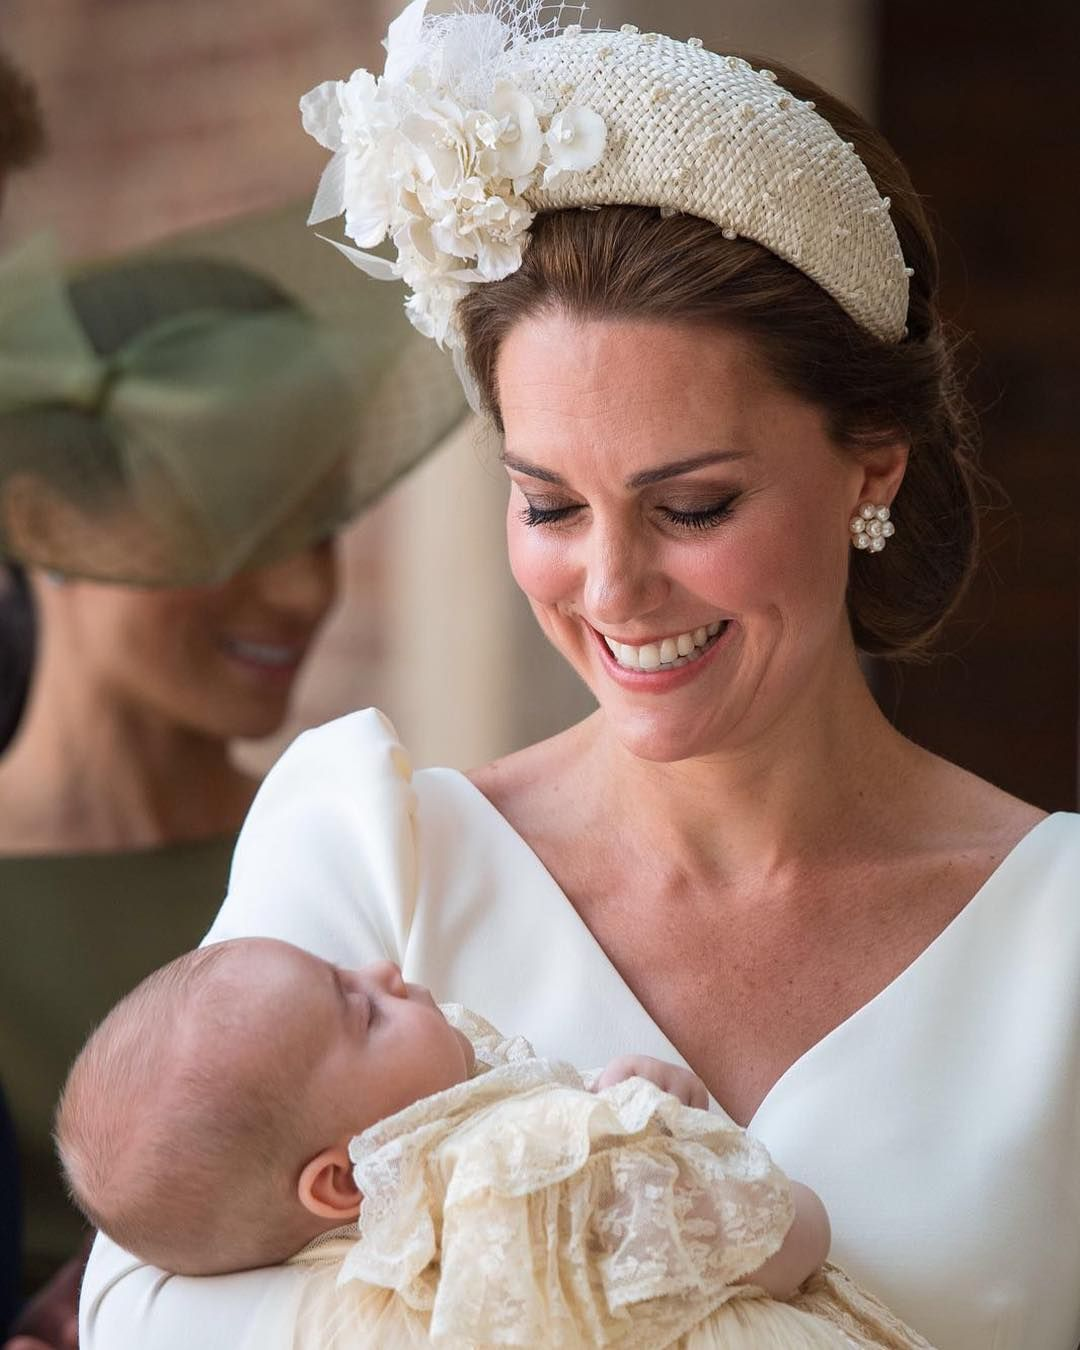 Royal Christening Style Roundup: All the Details on What